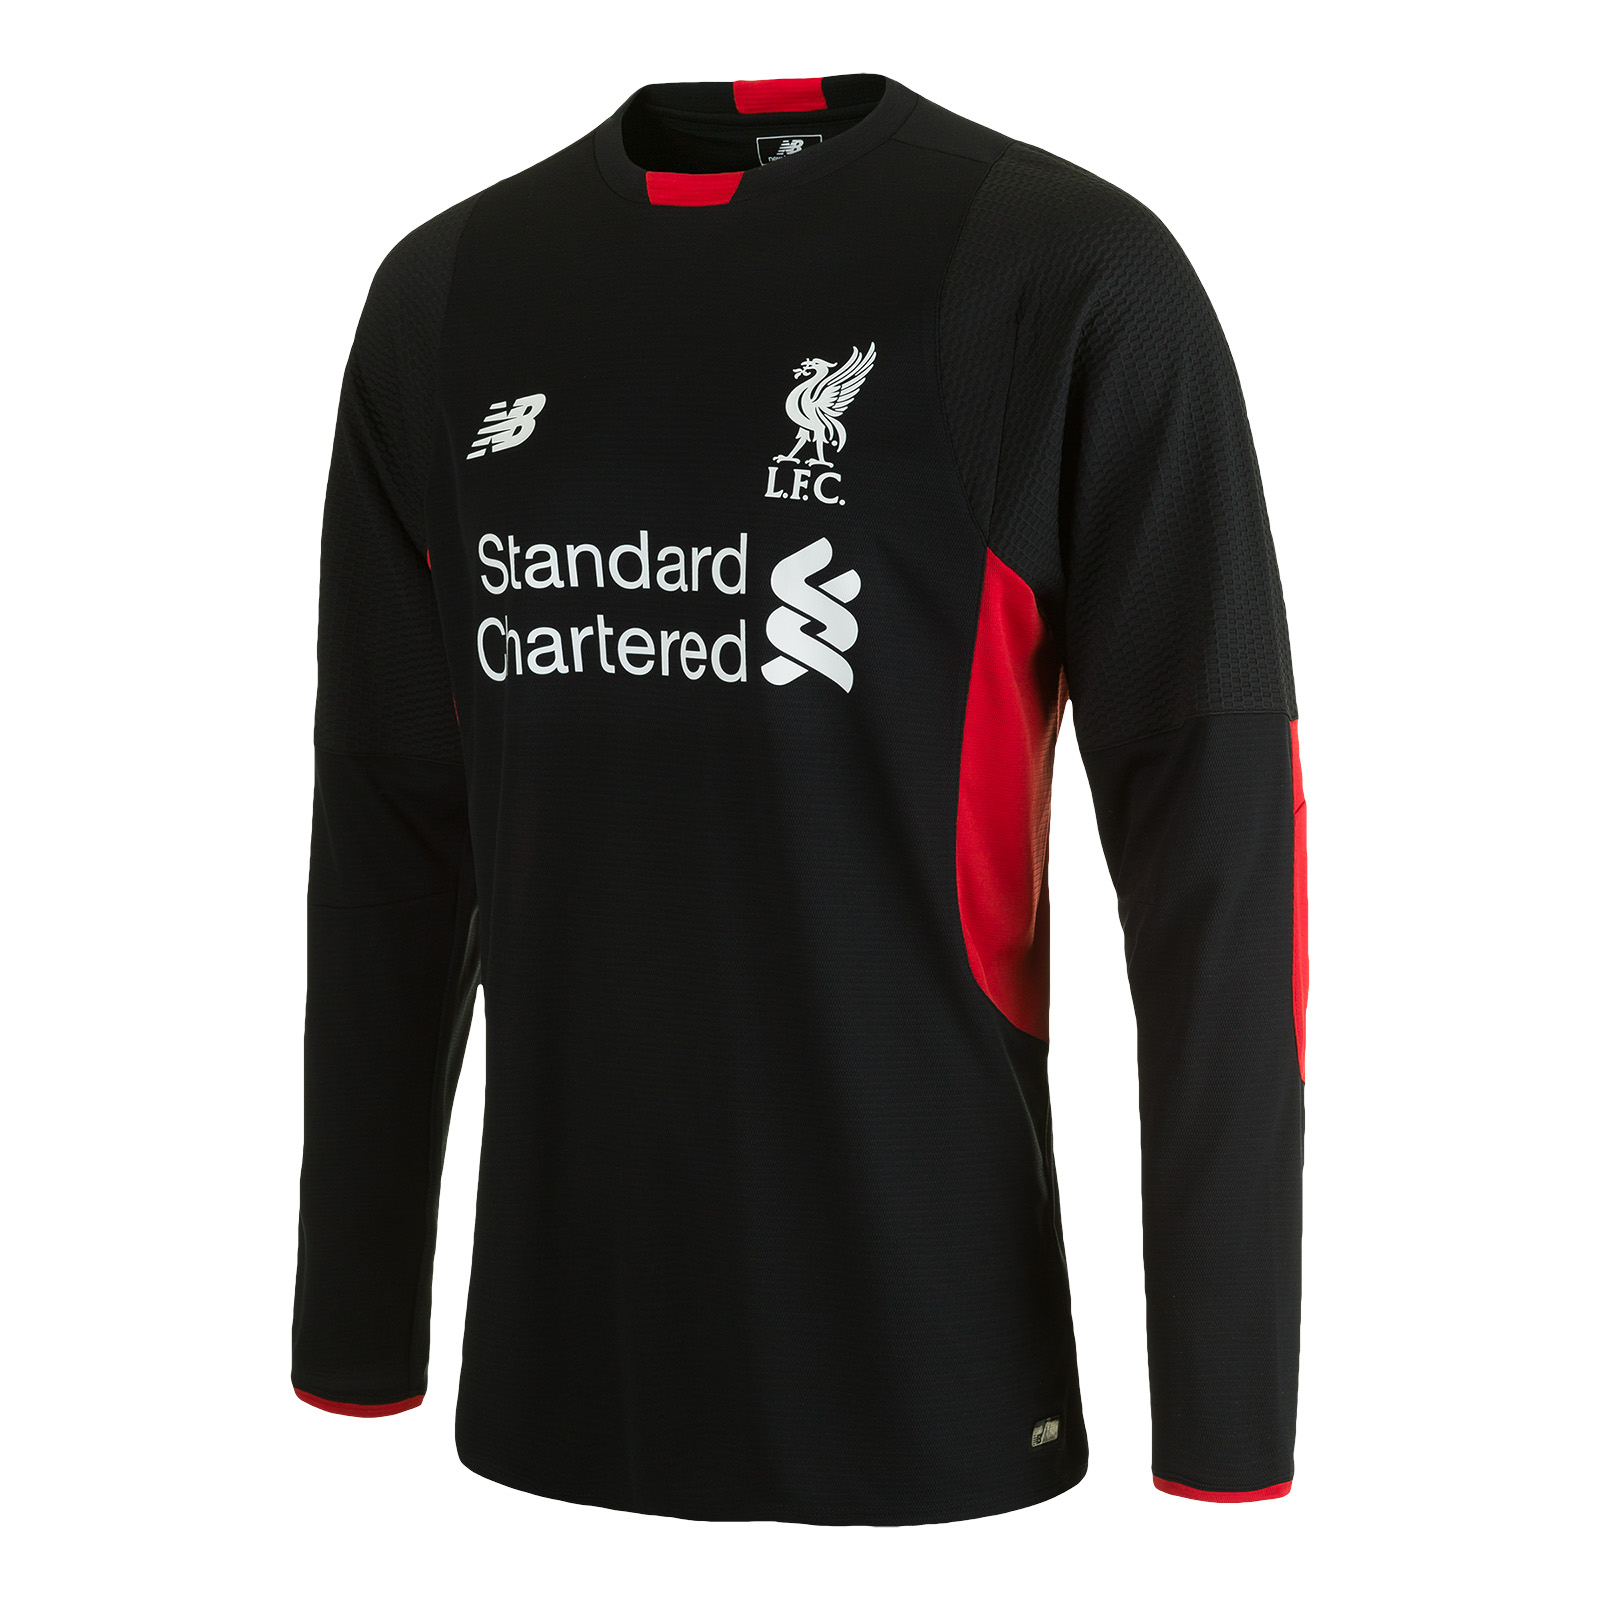 sale retailer 5b0c8 6eff8 What's the best kit Liverpool has ever had? (idea from r ...